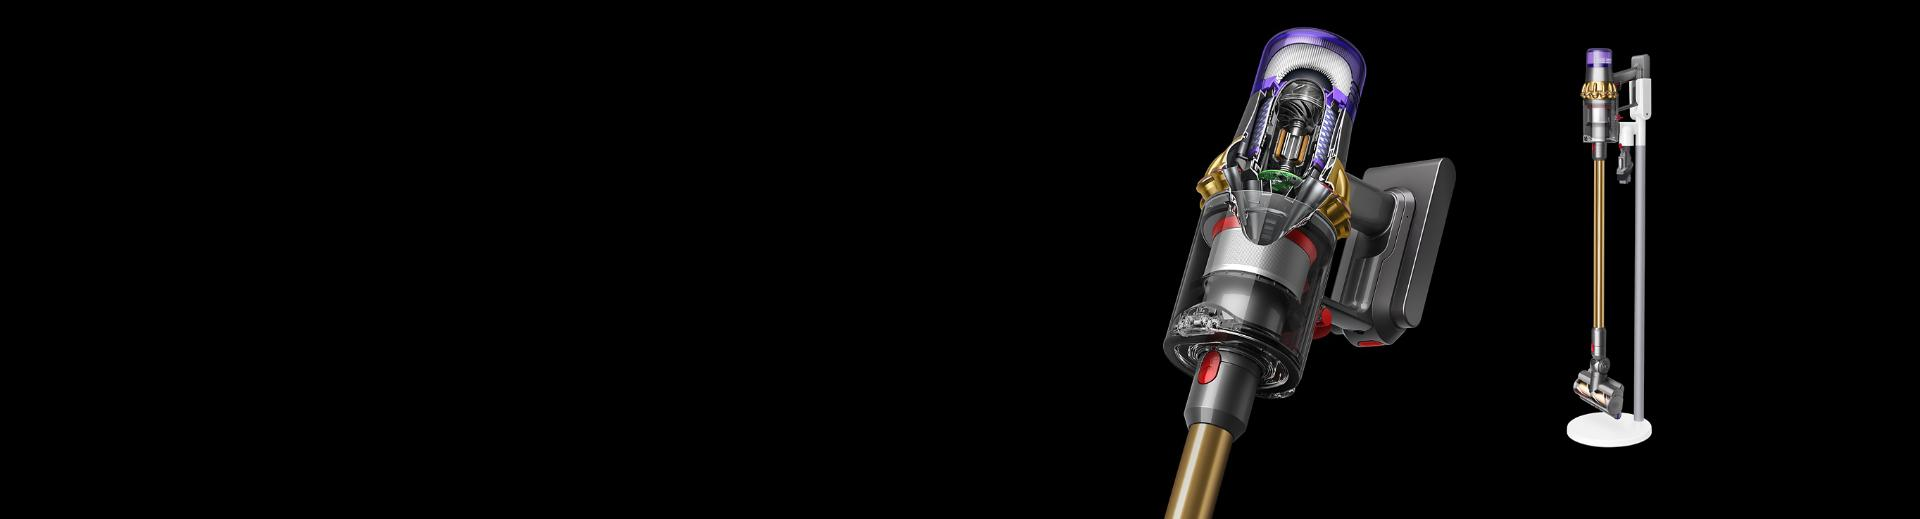 Best prices and latest offers on range of Dyson cordfree vacuum cleaners